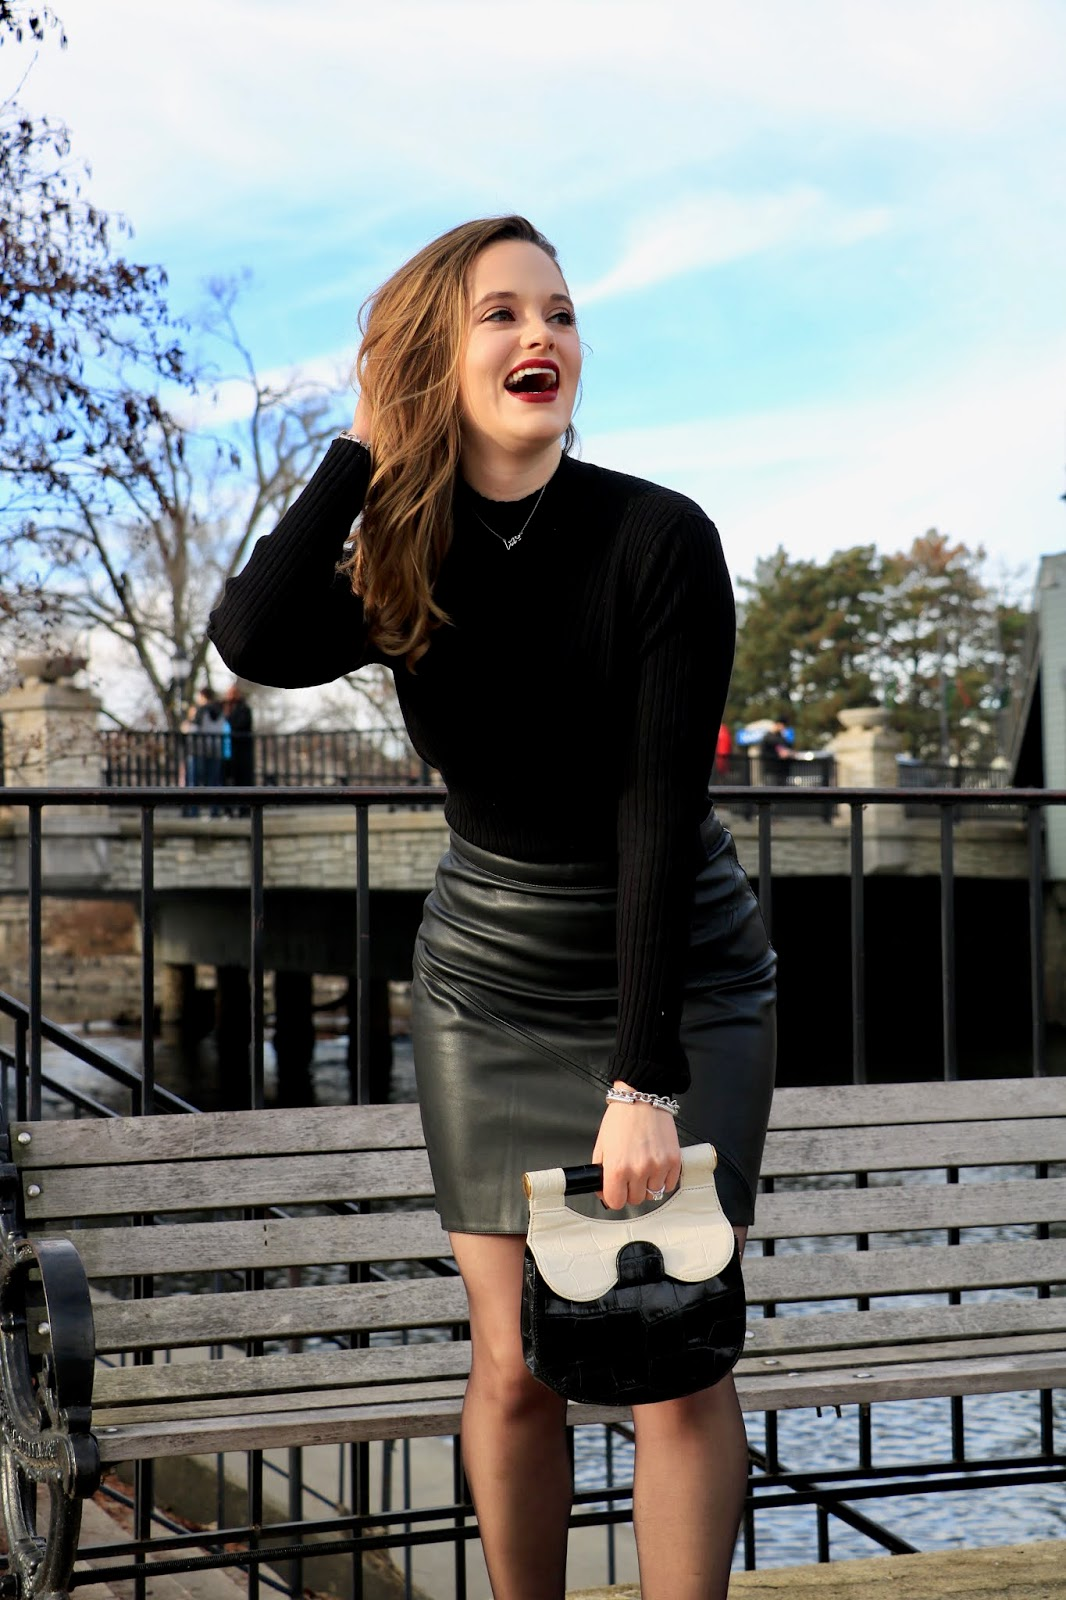 Nyc fashion blogger Kathleen Harper's winter outfit inspo for work and date night.